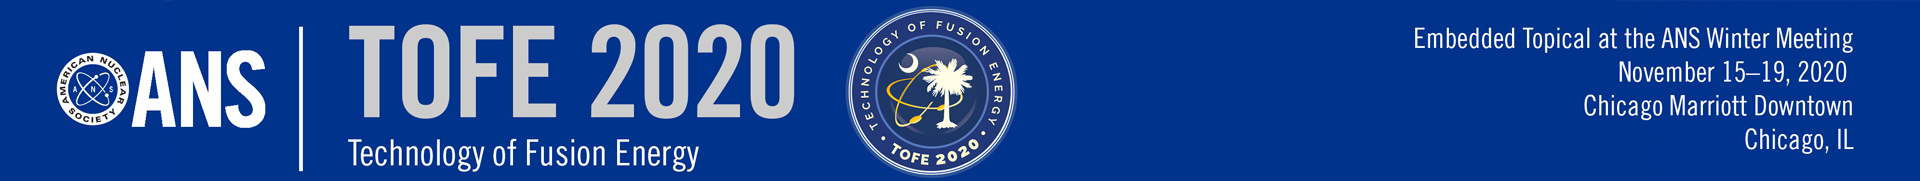 TOFE 2020